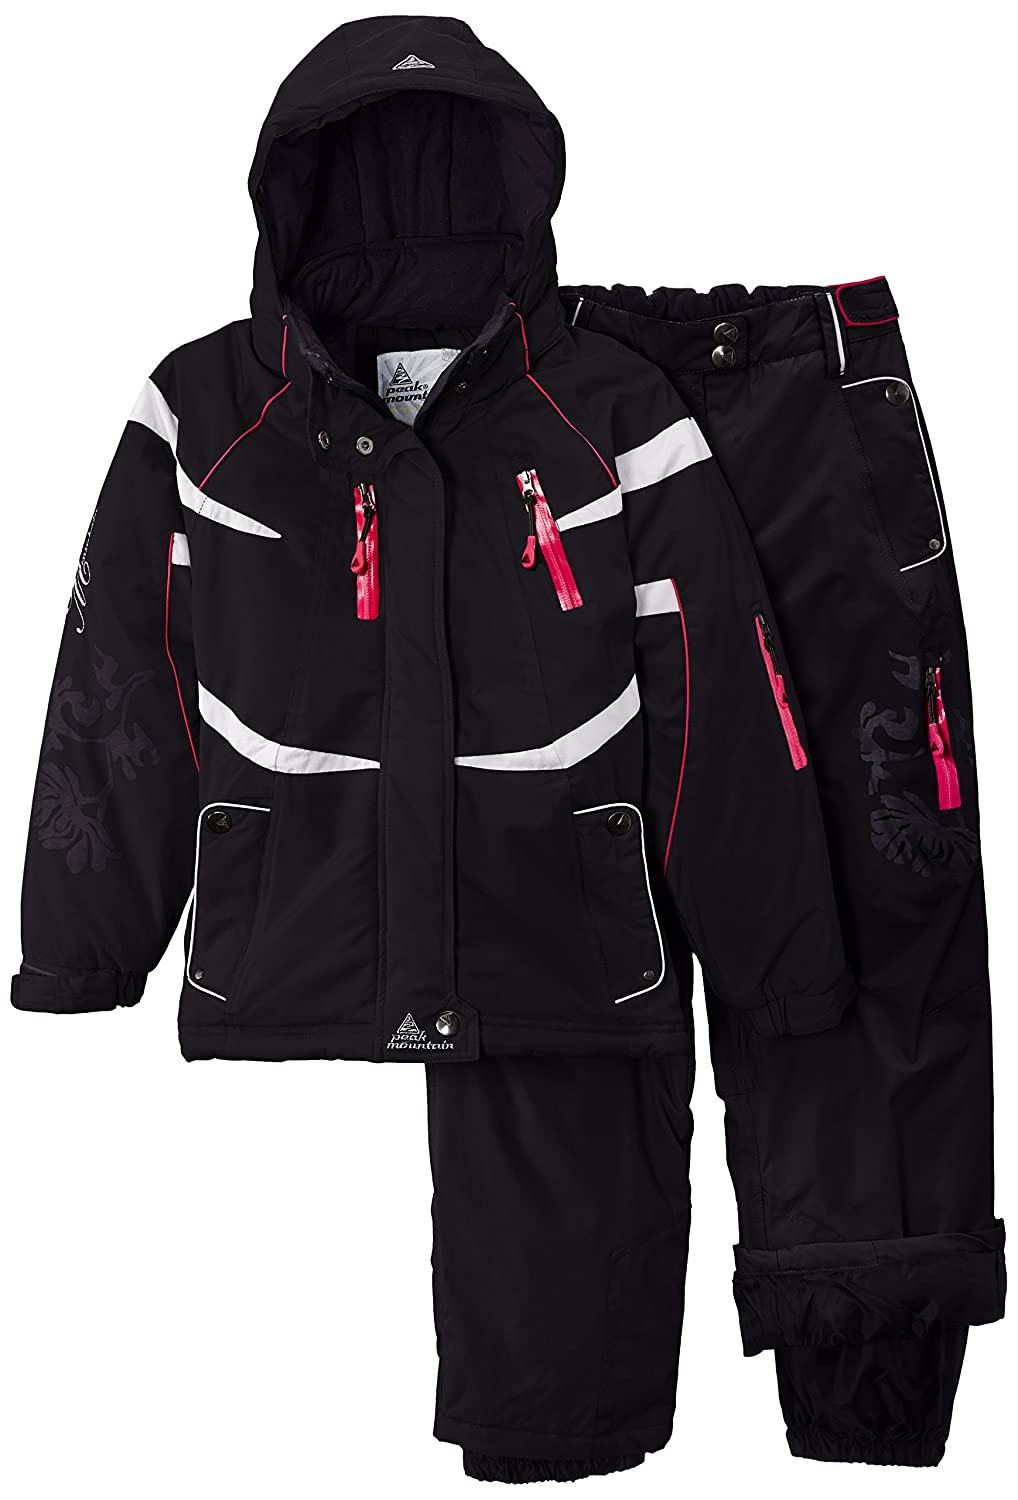 Peak Mountain Gacial/Nh Girls' Ski Kit with Snow Belt